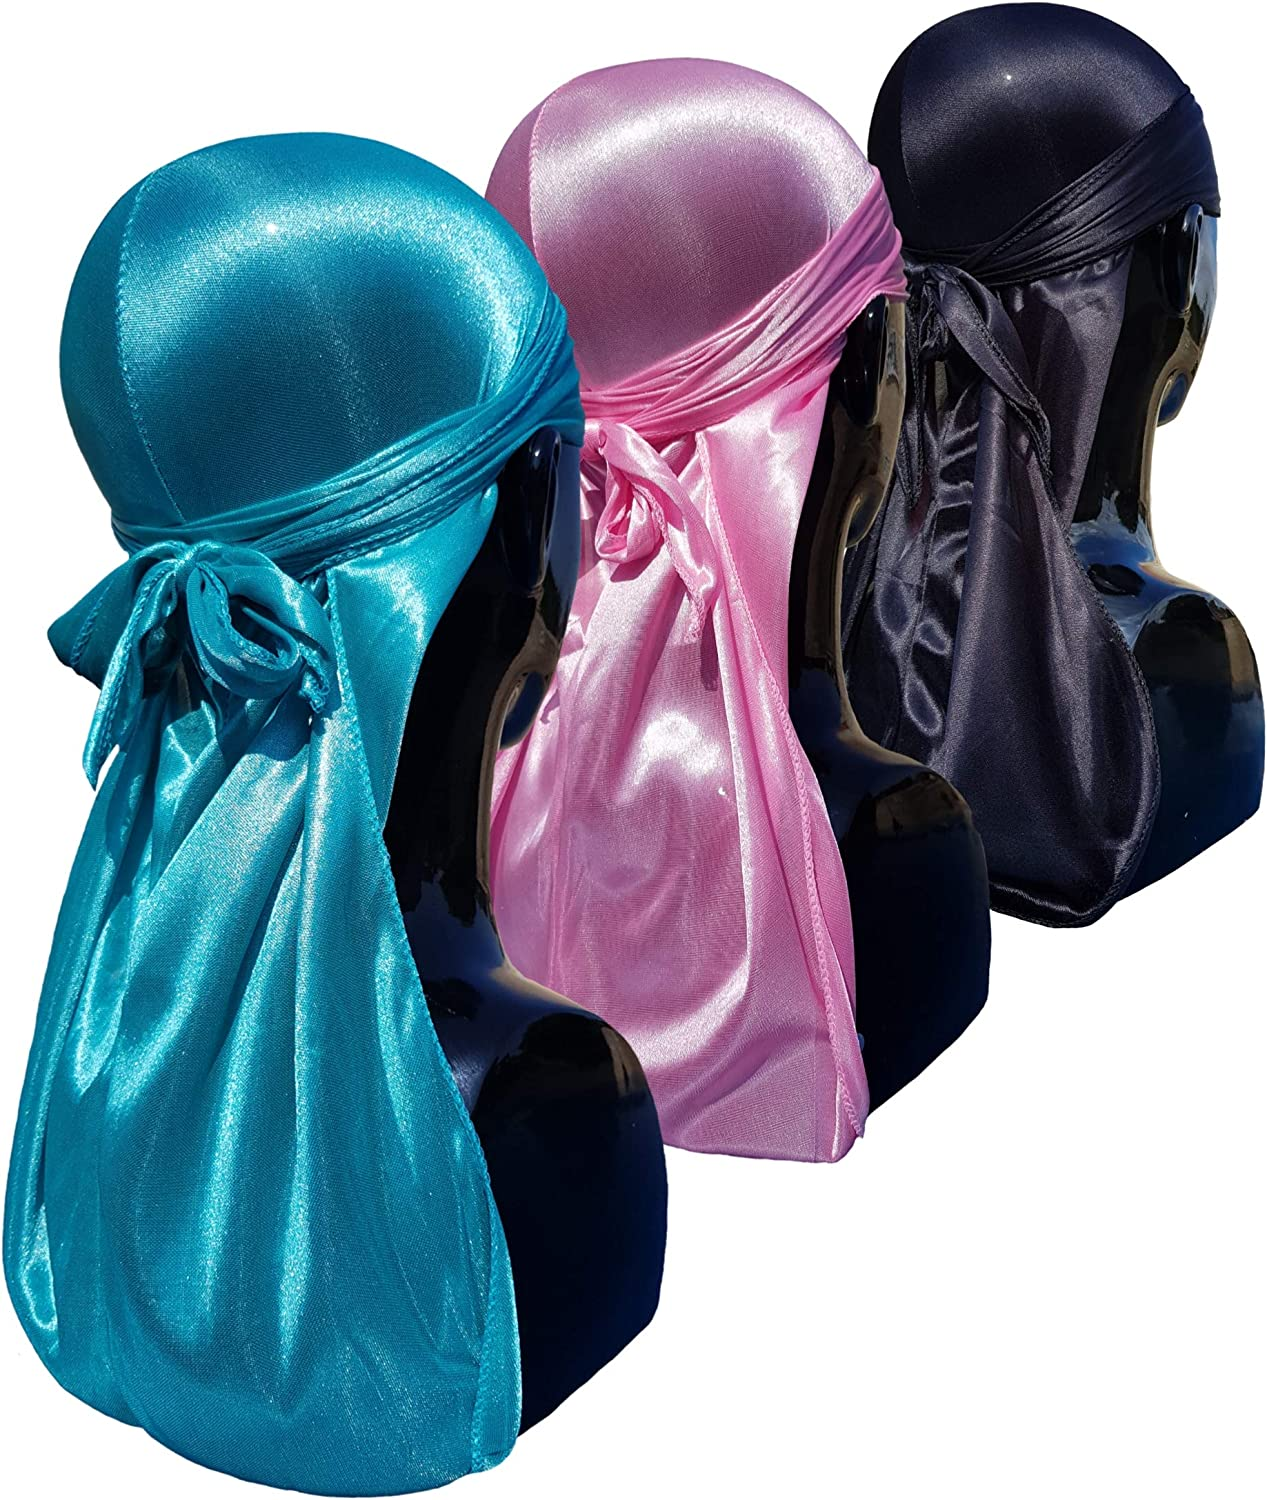 2Pcs Silky Durags For Men And Women Light Weight And Very Breathable Durag To Keep Waves And Cornrow Fresh